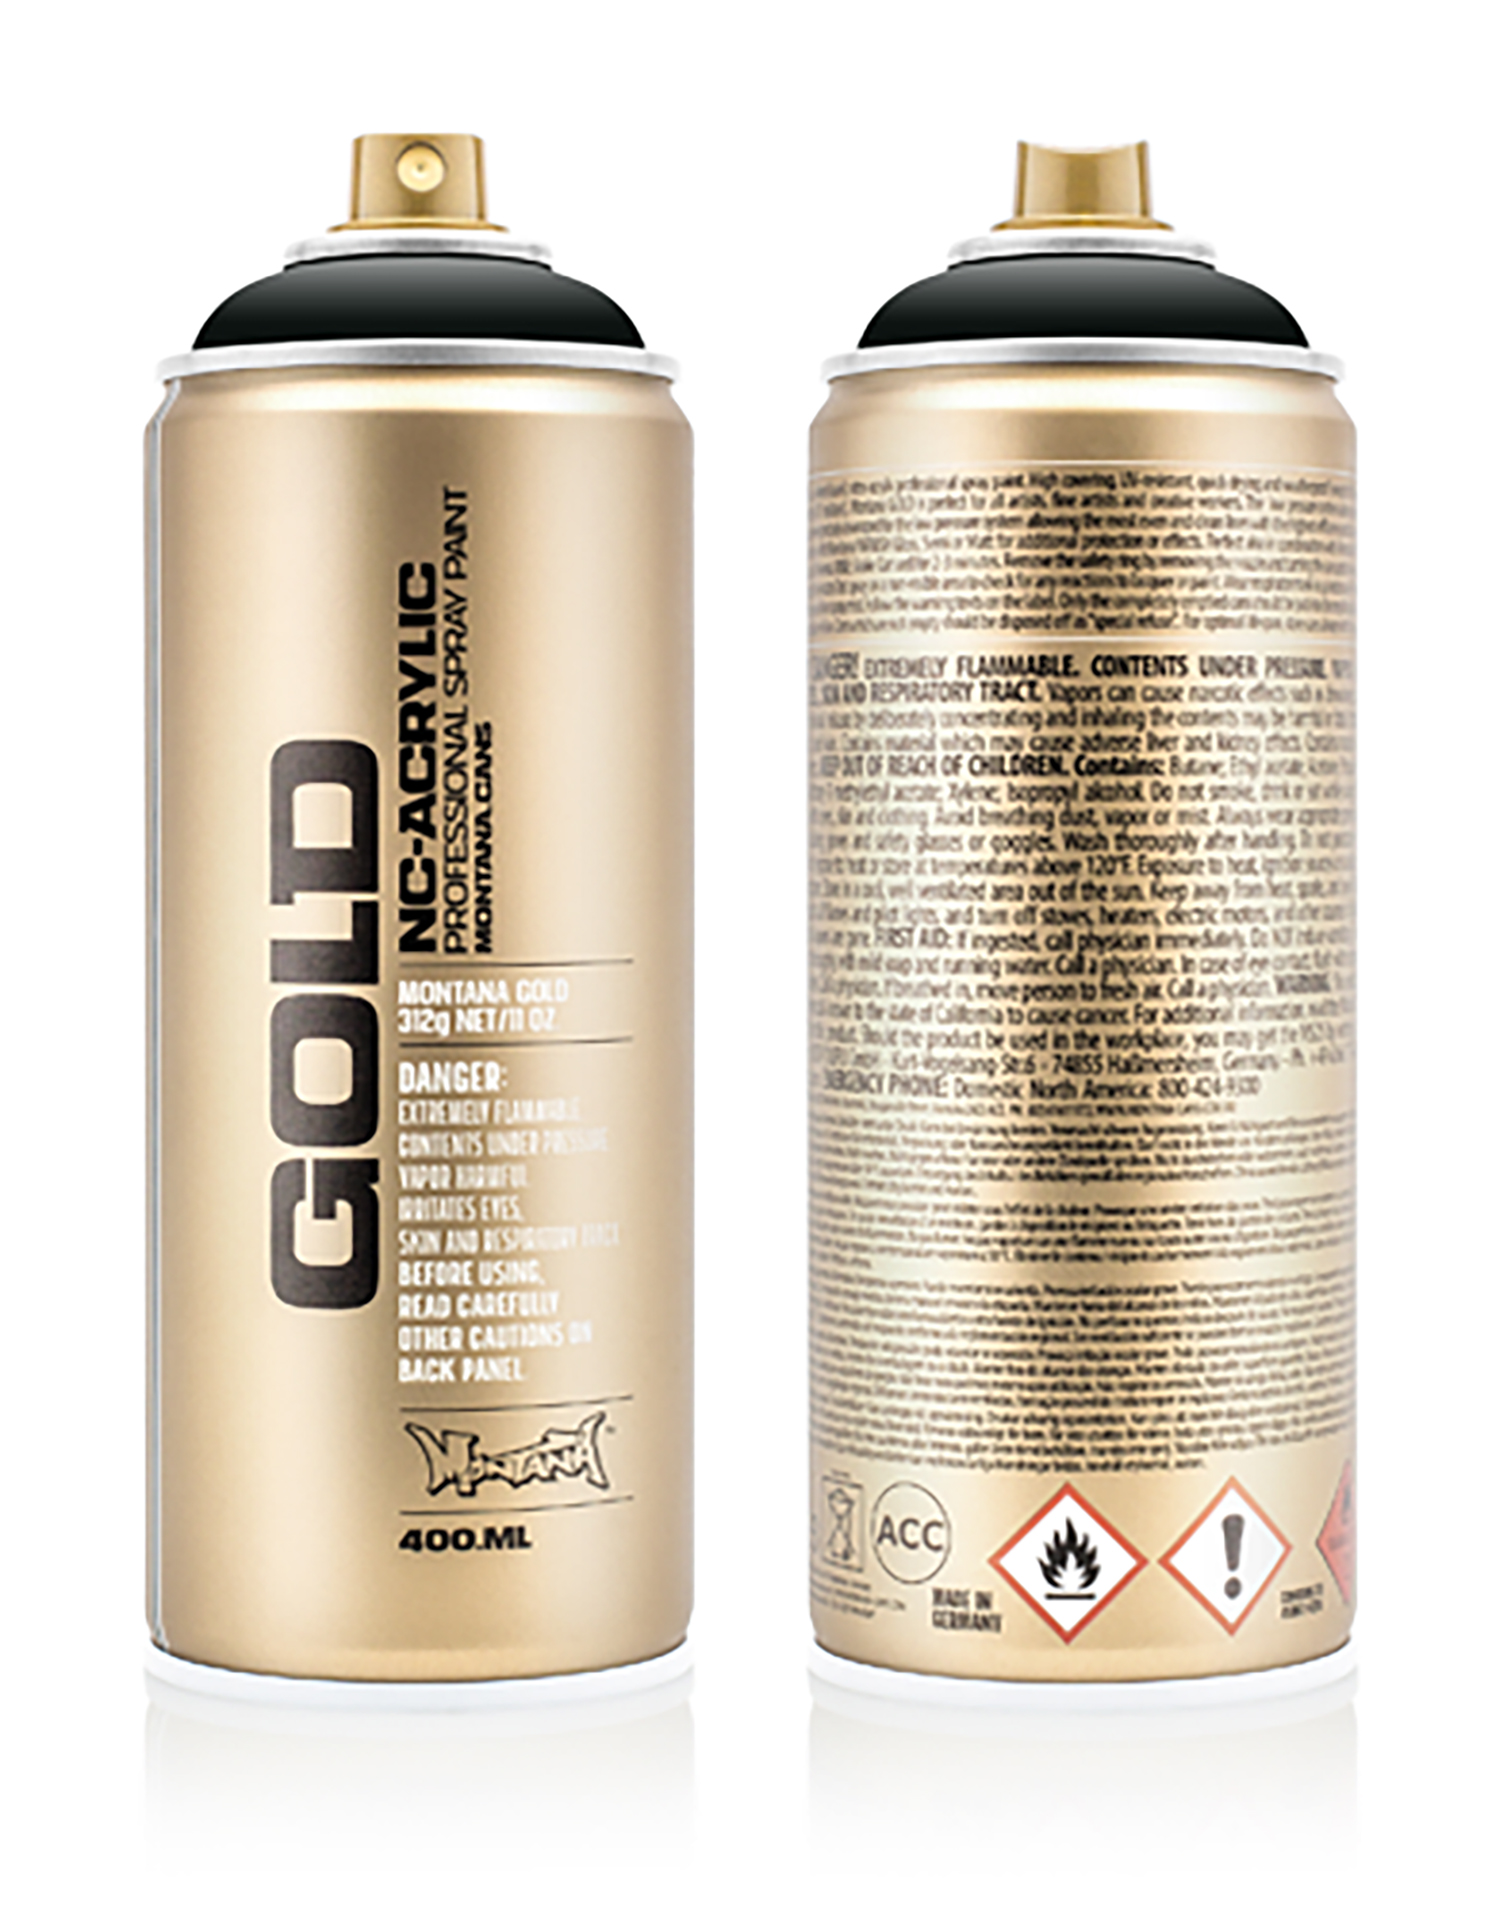 MONTANA-GOLD-SPRAY-400ML-G-7090